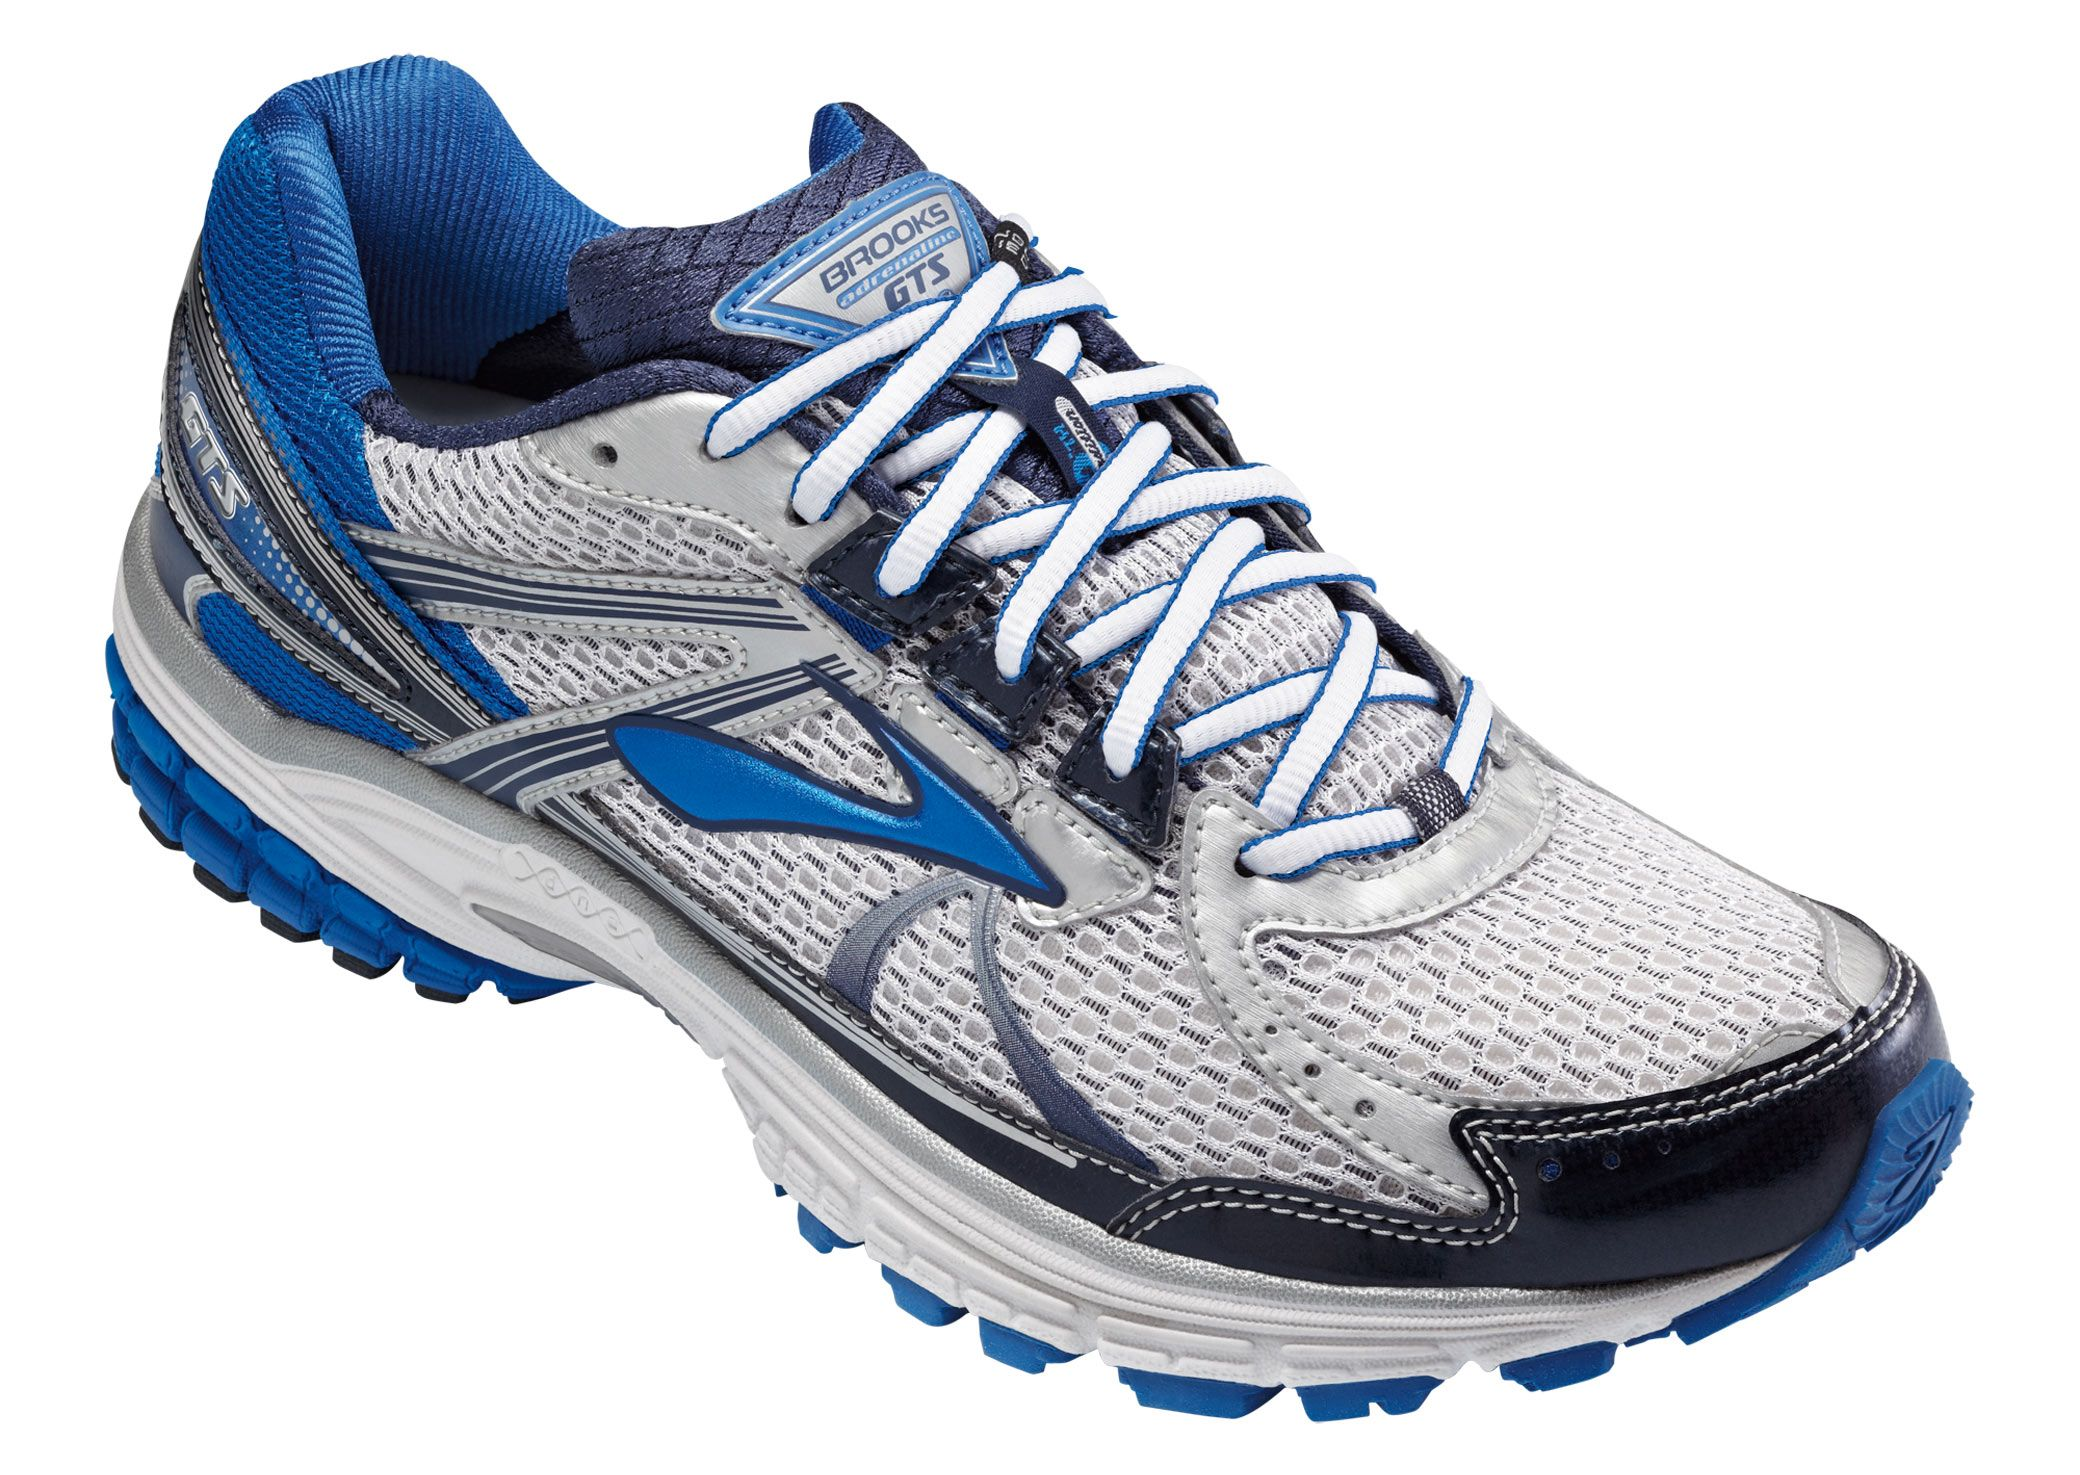 Nove enorme Betsy Trotwood  Brooks Adrenaline GTS 13 men's running shoe with Brooks DNA - BrooksRunning.com  | Running shoes for men, Brooks running shoes adrenaline, Road running shoes